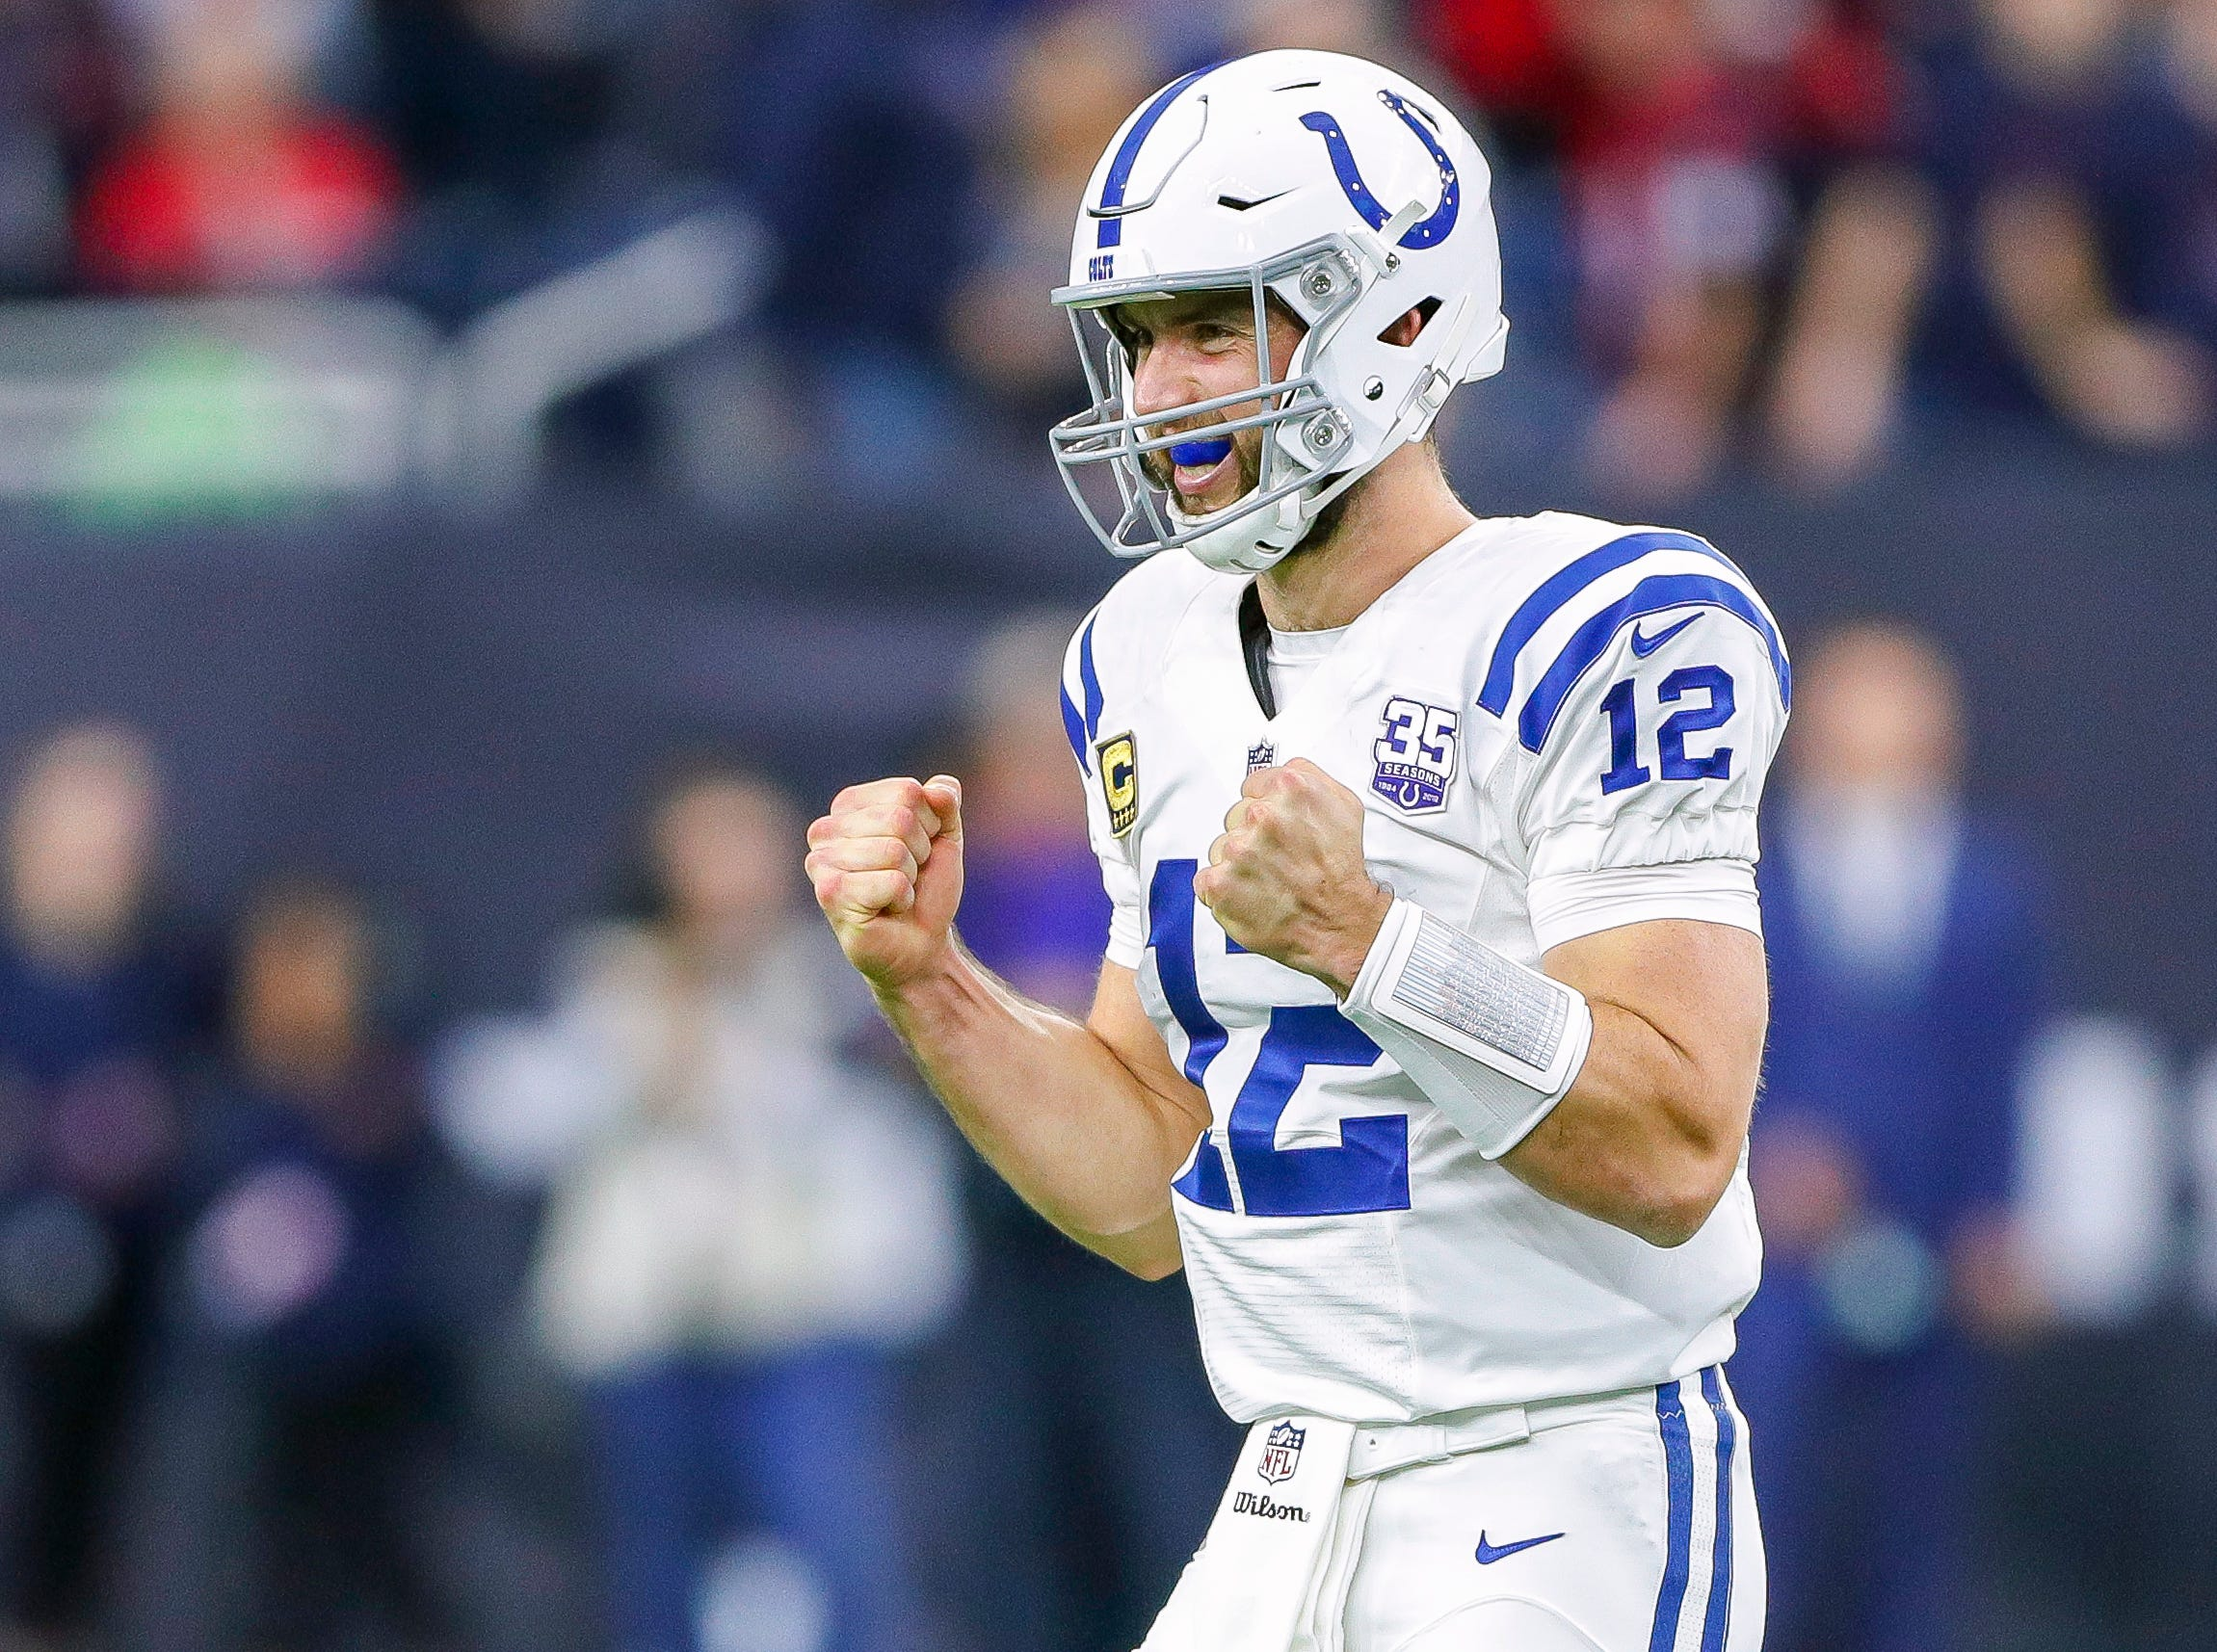 Indianapolis Colts quarterback Andrew Luck (12) shows his emotions after the Houston Texans jump offsides near the end of the fourth quarter at NRG Stadium in Houston on Sunday, Dec. 9, 2018. The penalty allowed the Colts to kneel to run out the clock.